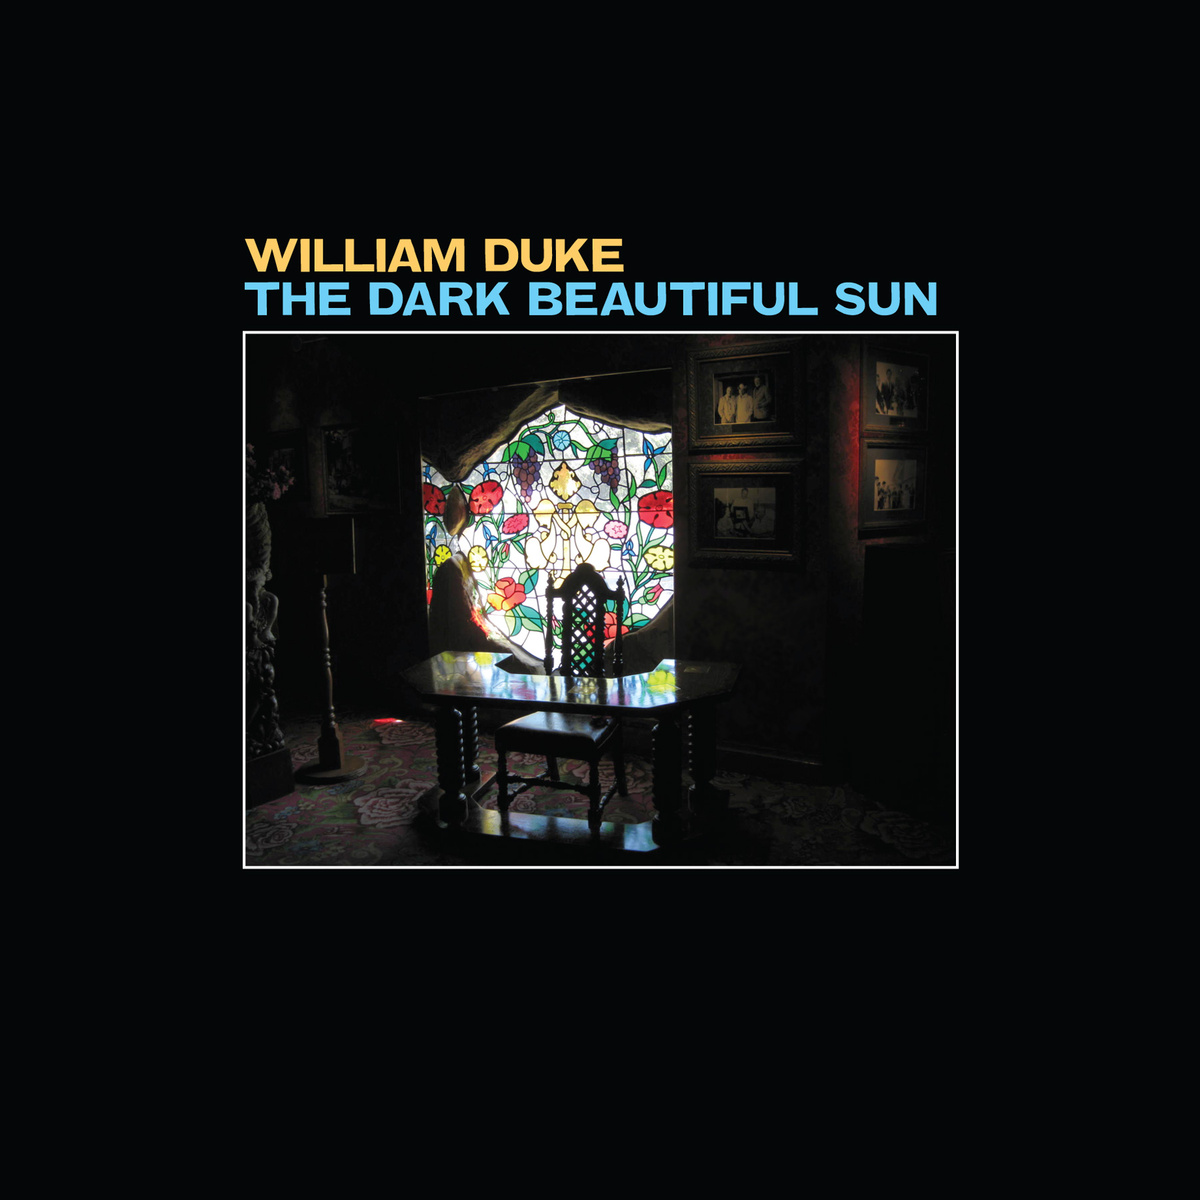 Let The Shining Light Be Comprehended By The Darkness: William Duke's The Dark Beautiful Sun